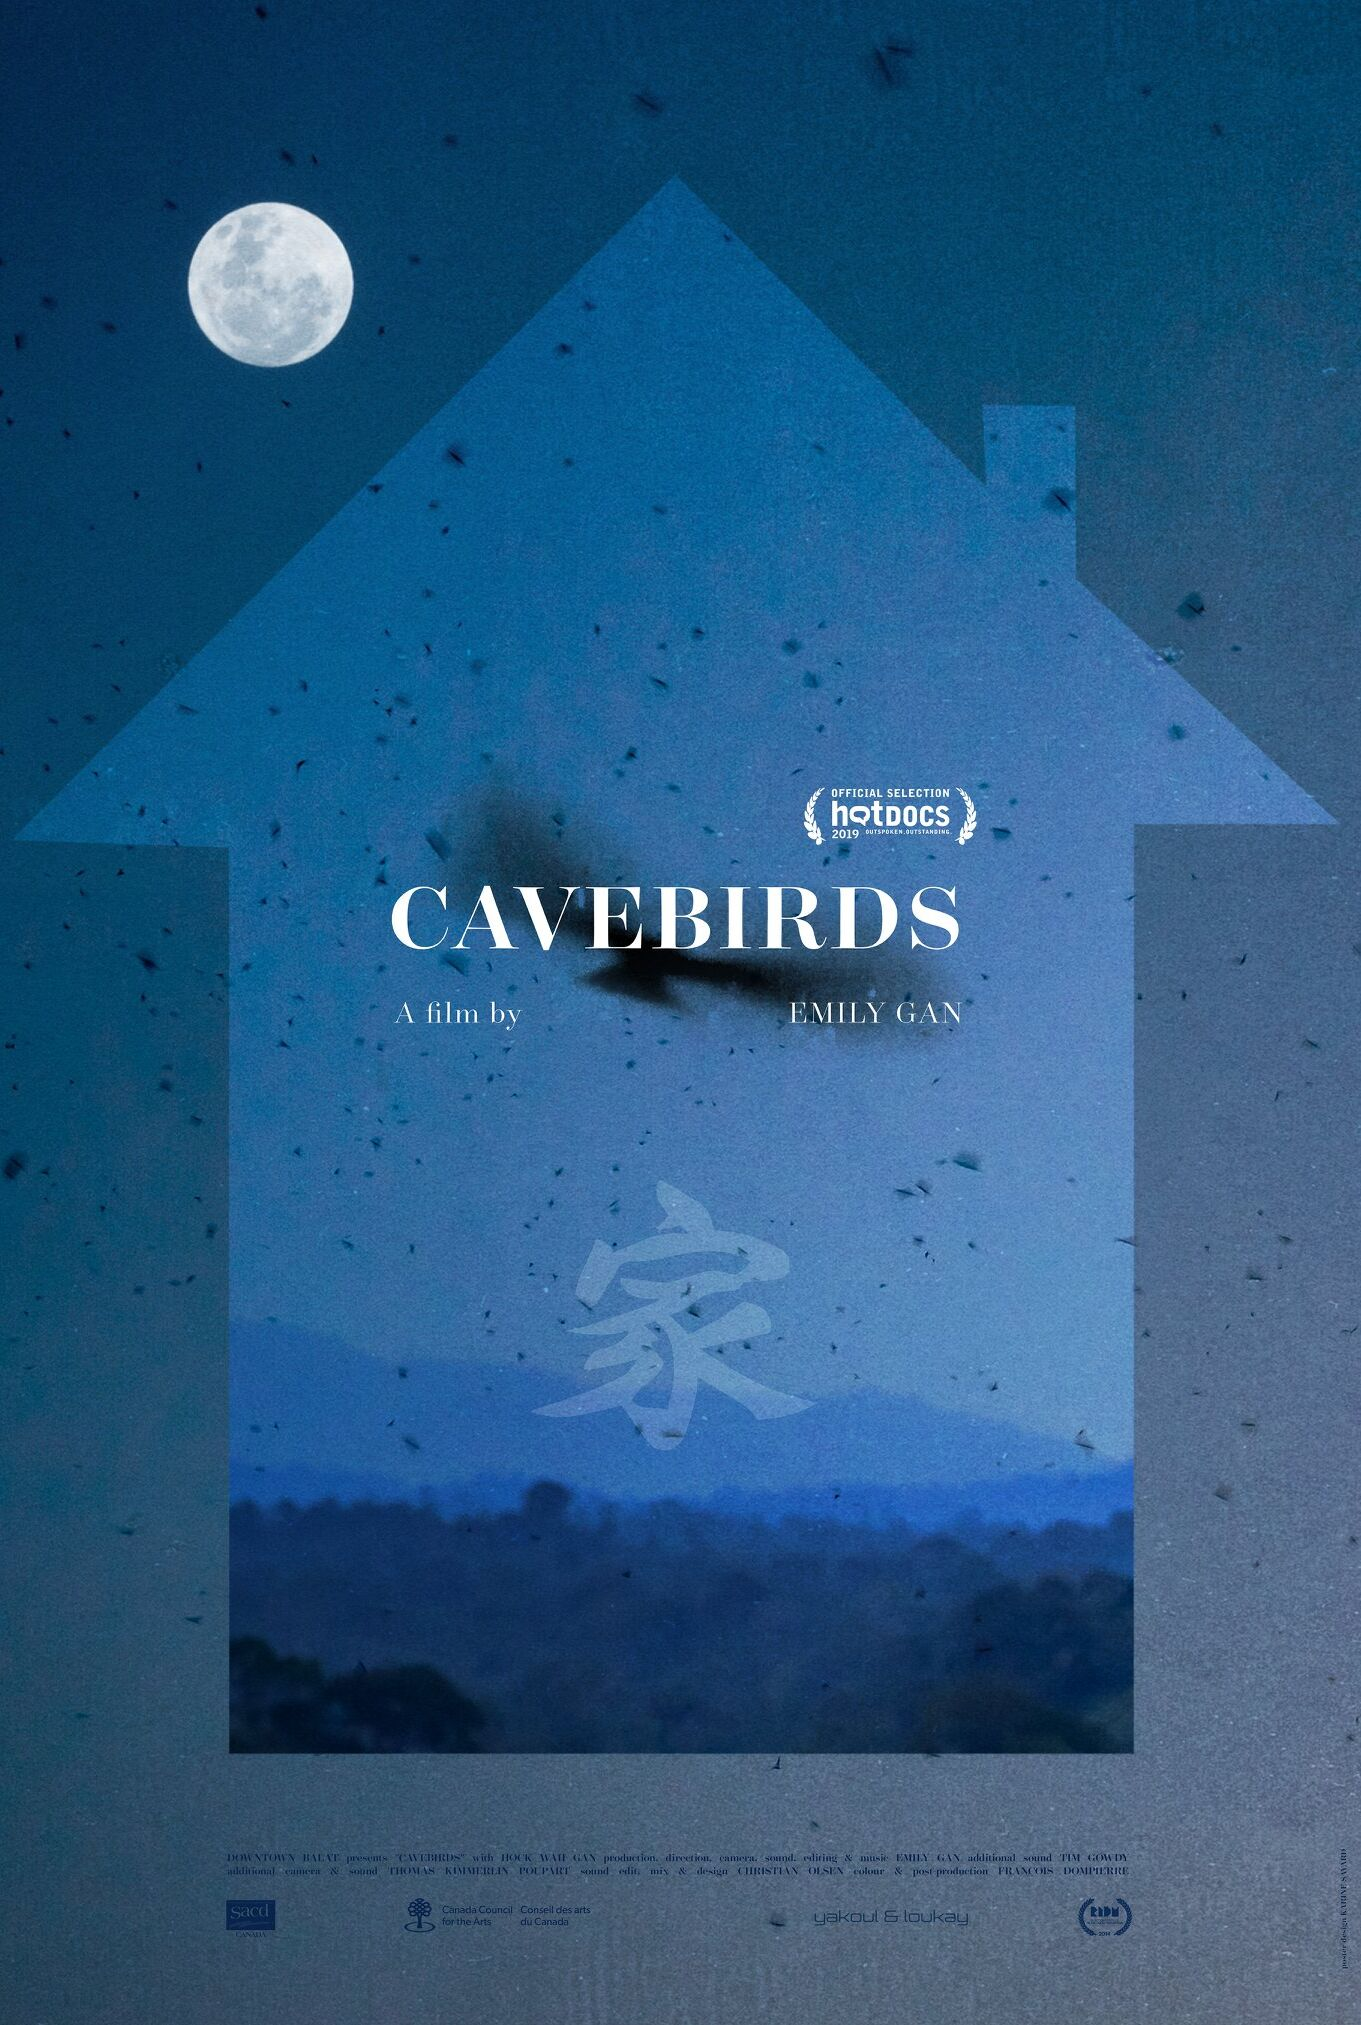 Cavebird - Documentary film by Emily Gan - Official poster